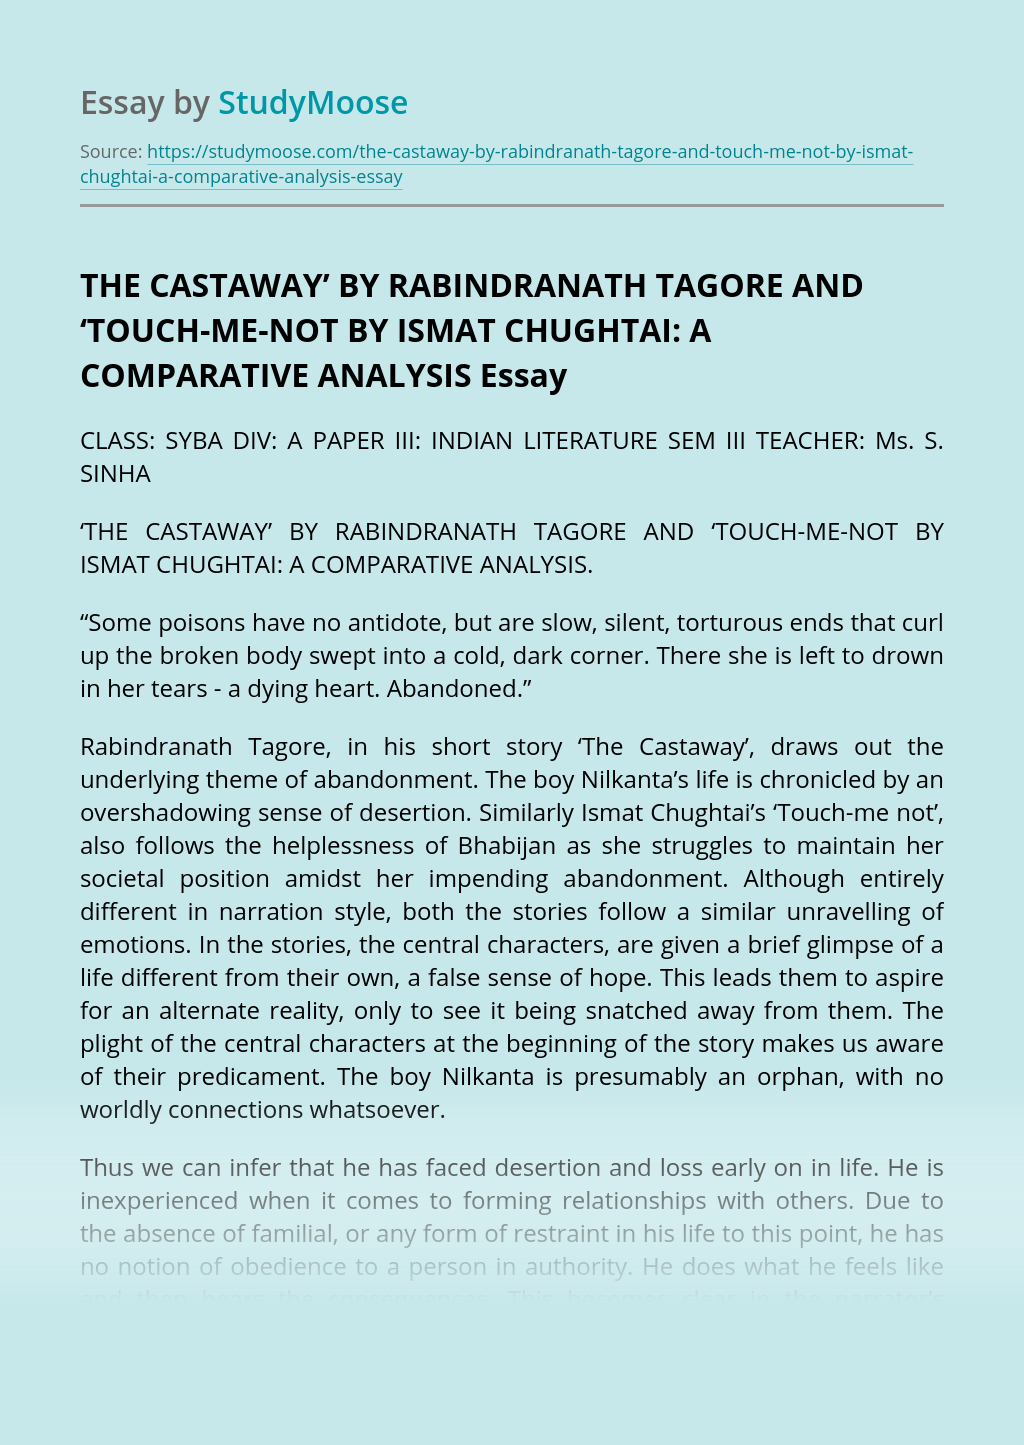 The Castaway' by Rabindranath Tagore and 'Touch-me-not by Ismat Chughtai: A Comparative Analysis